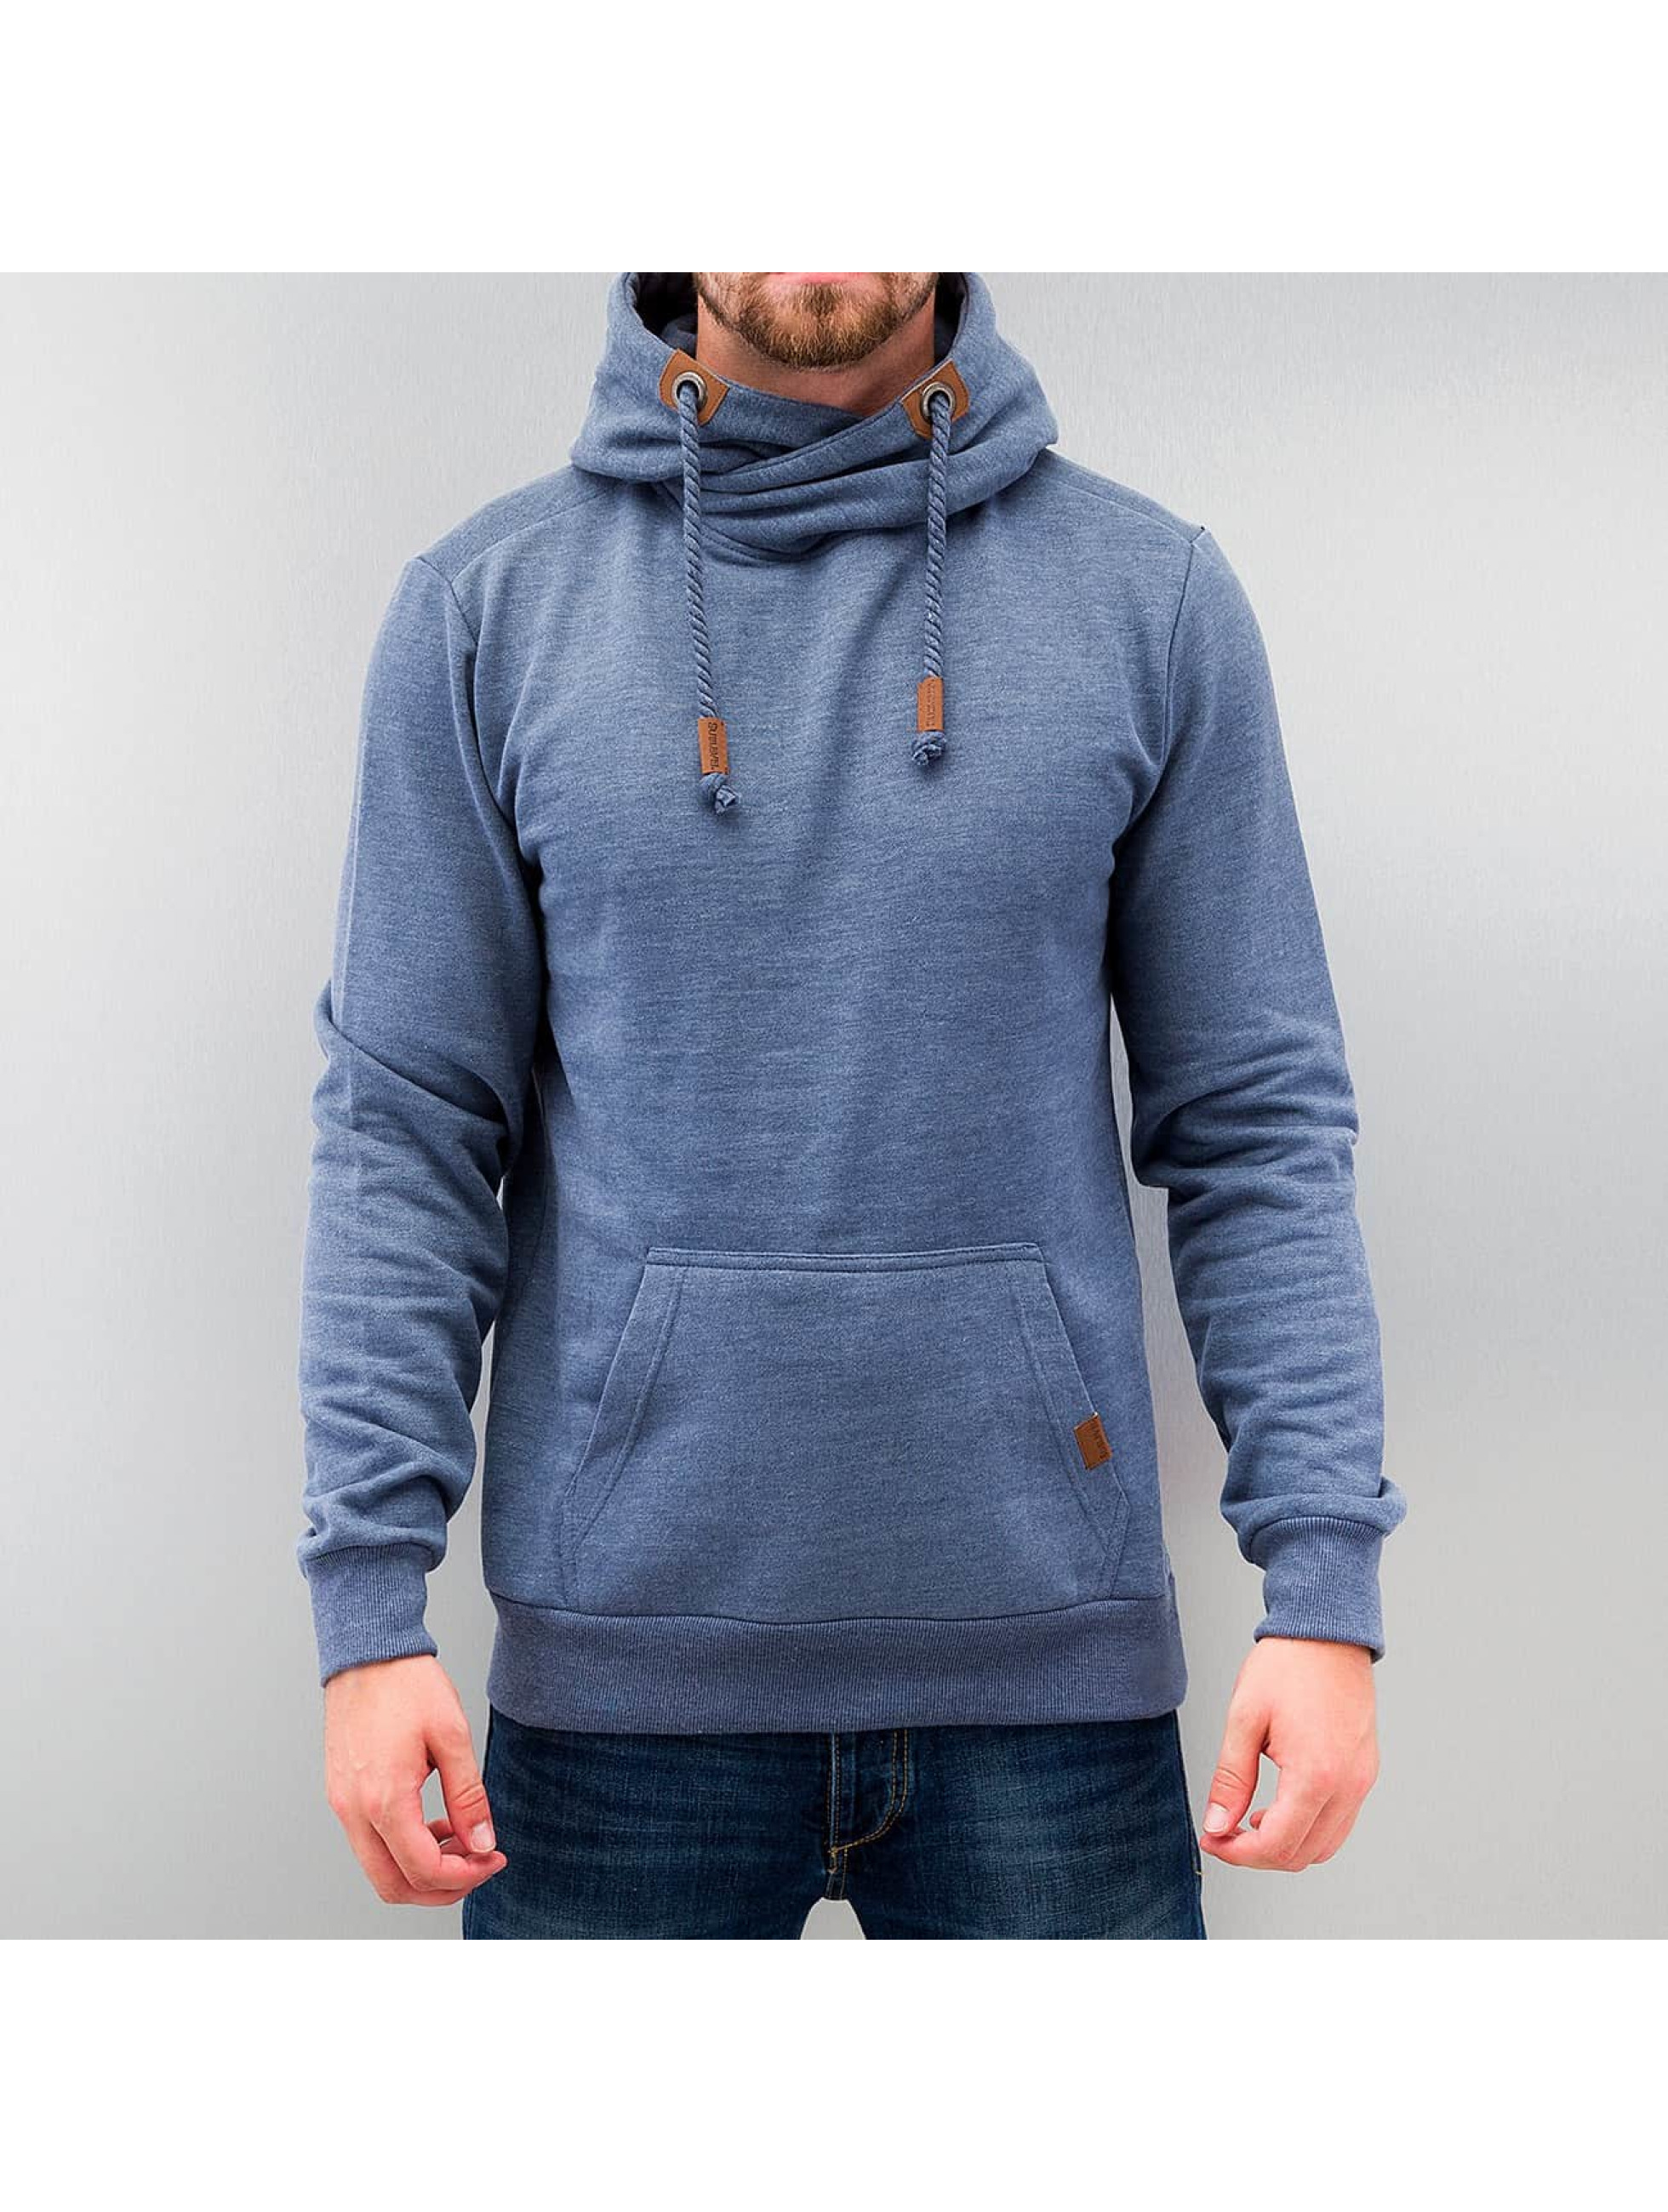 Authentic Style Haut / Sweat à capuche High Neck en bleu